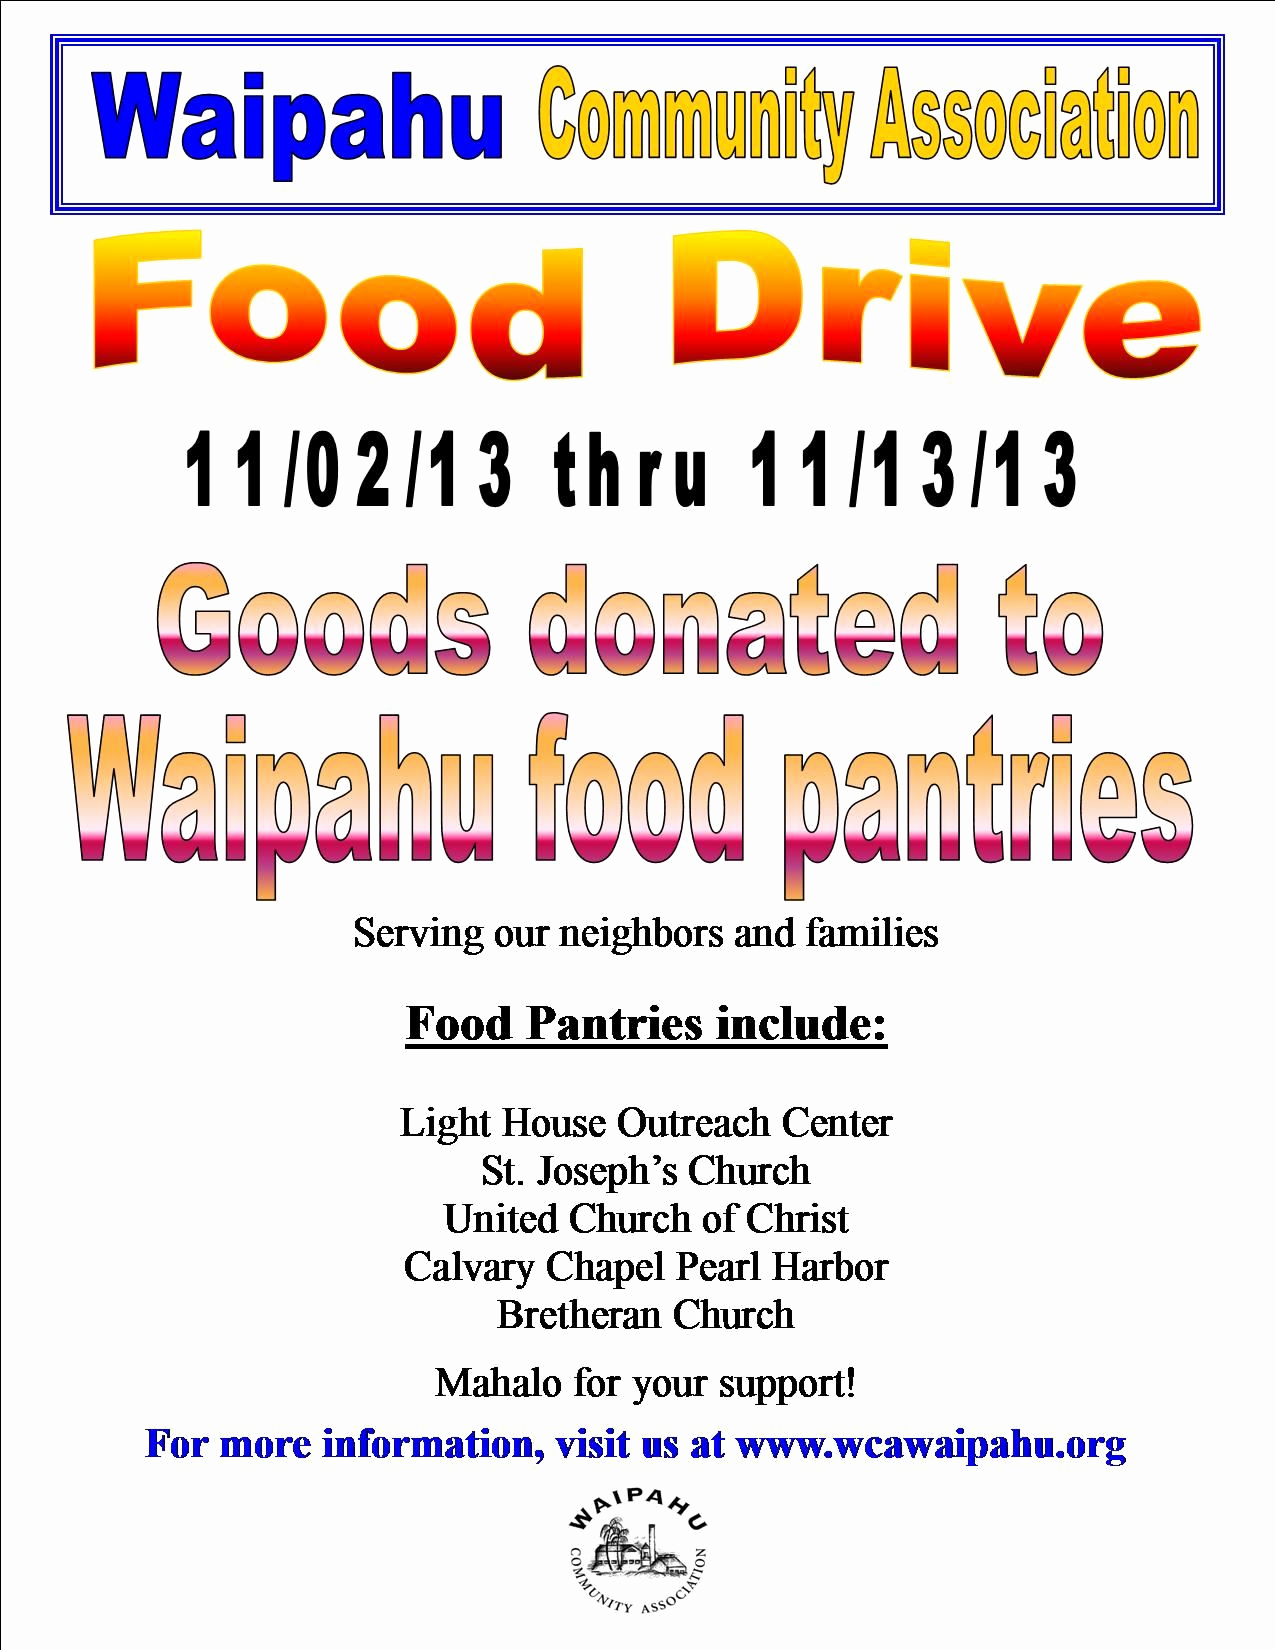 Canned Food Drive Flyer Luxury Food Drive – Free Drawing